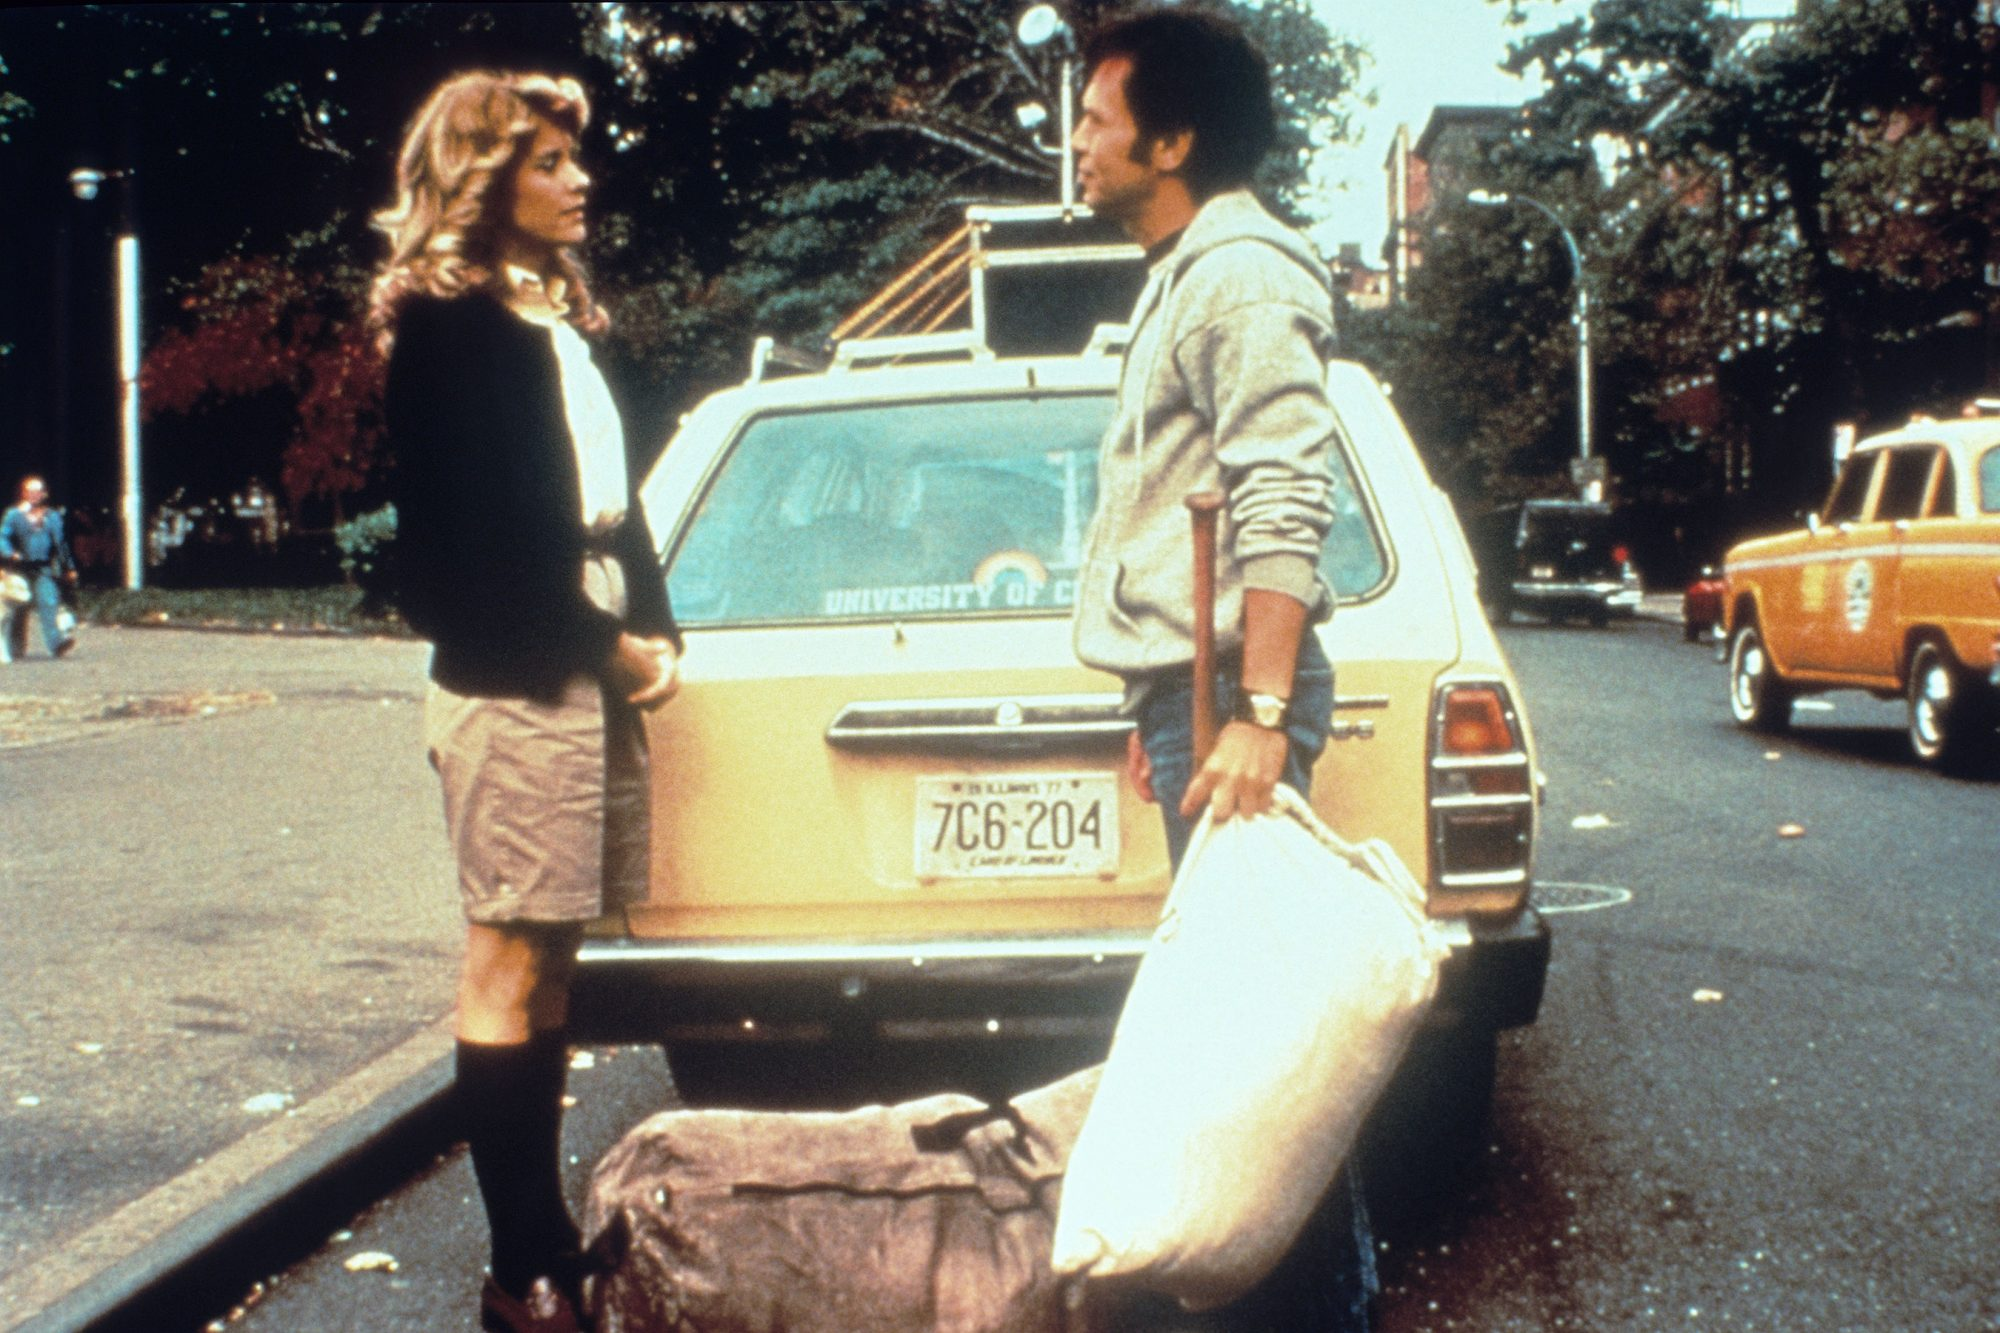 WHEN HARRY MET SALLY..., from left: Meg Ryan, Billy Crystal, 1989, © Columbia/courtesy Everett Colle